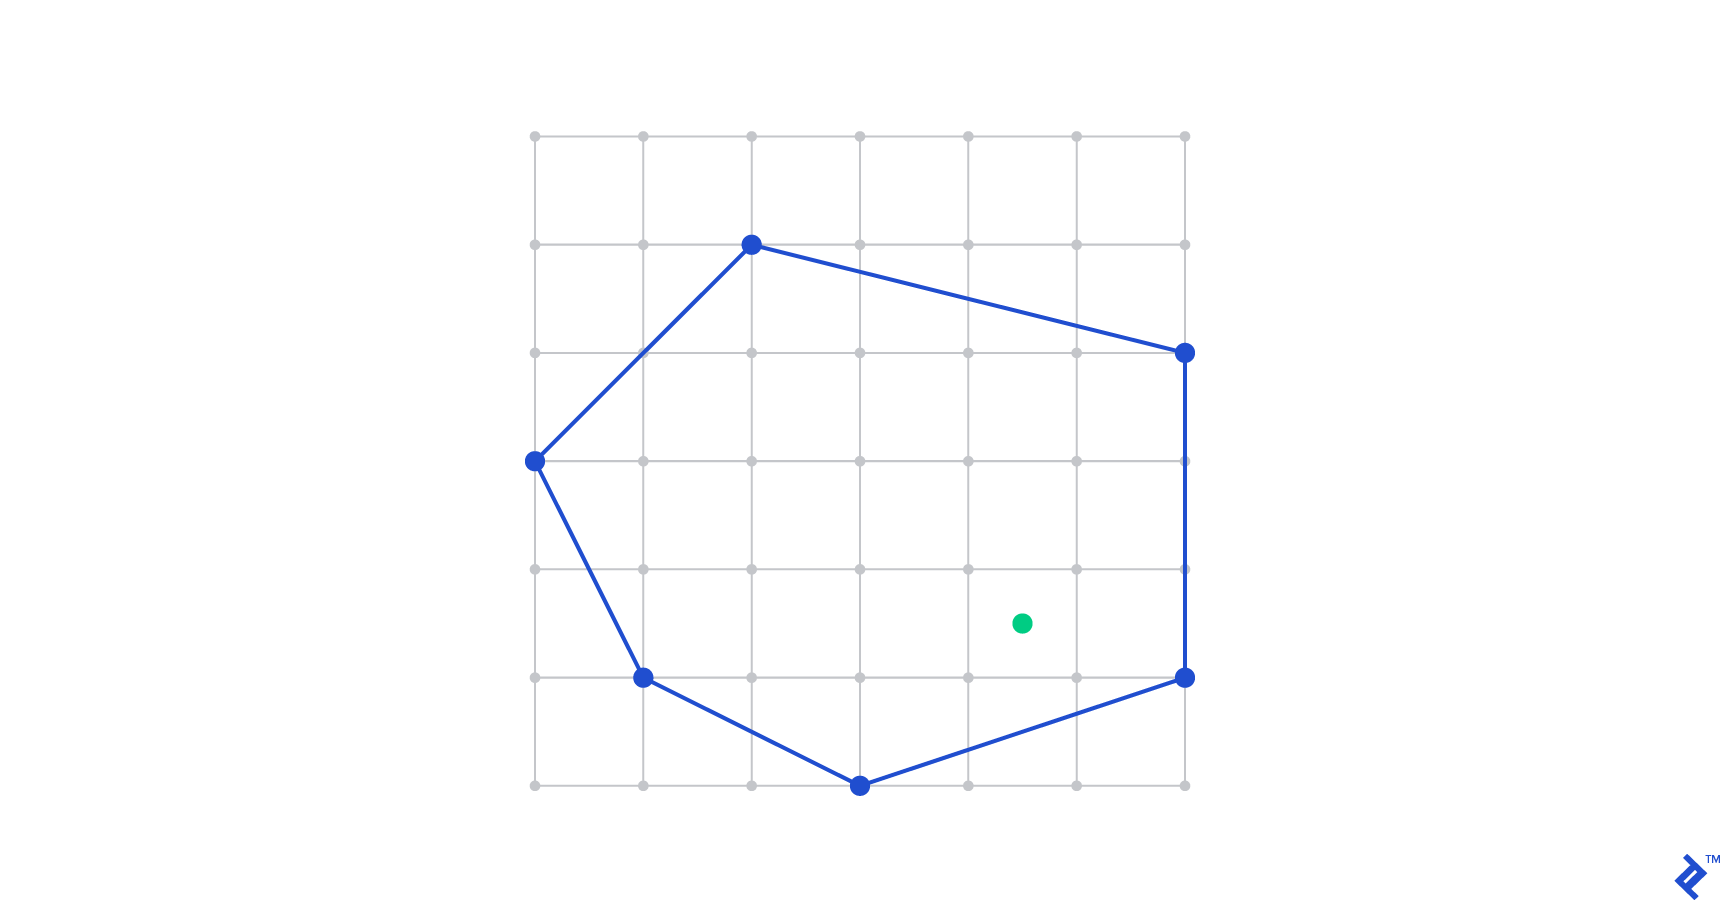 This point-in-polygon problem is a good example of computational geometry in one of its many applications.